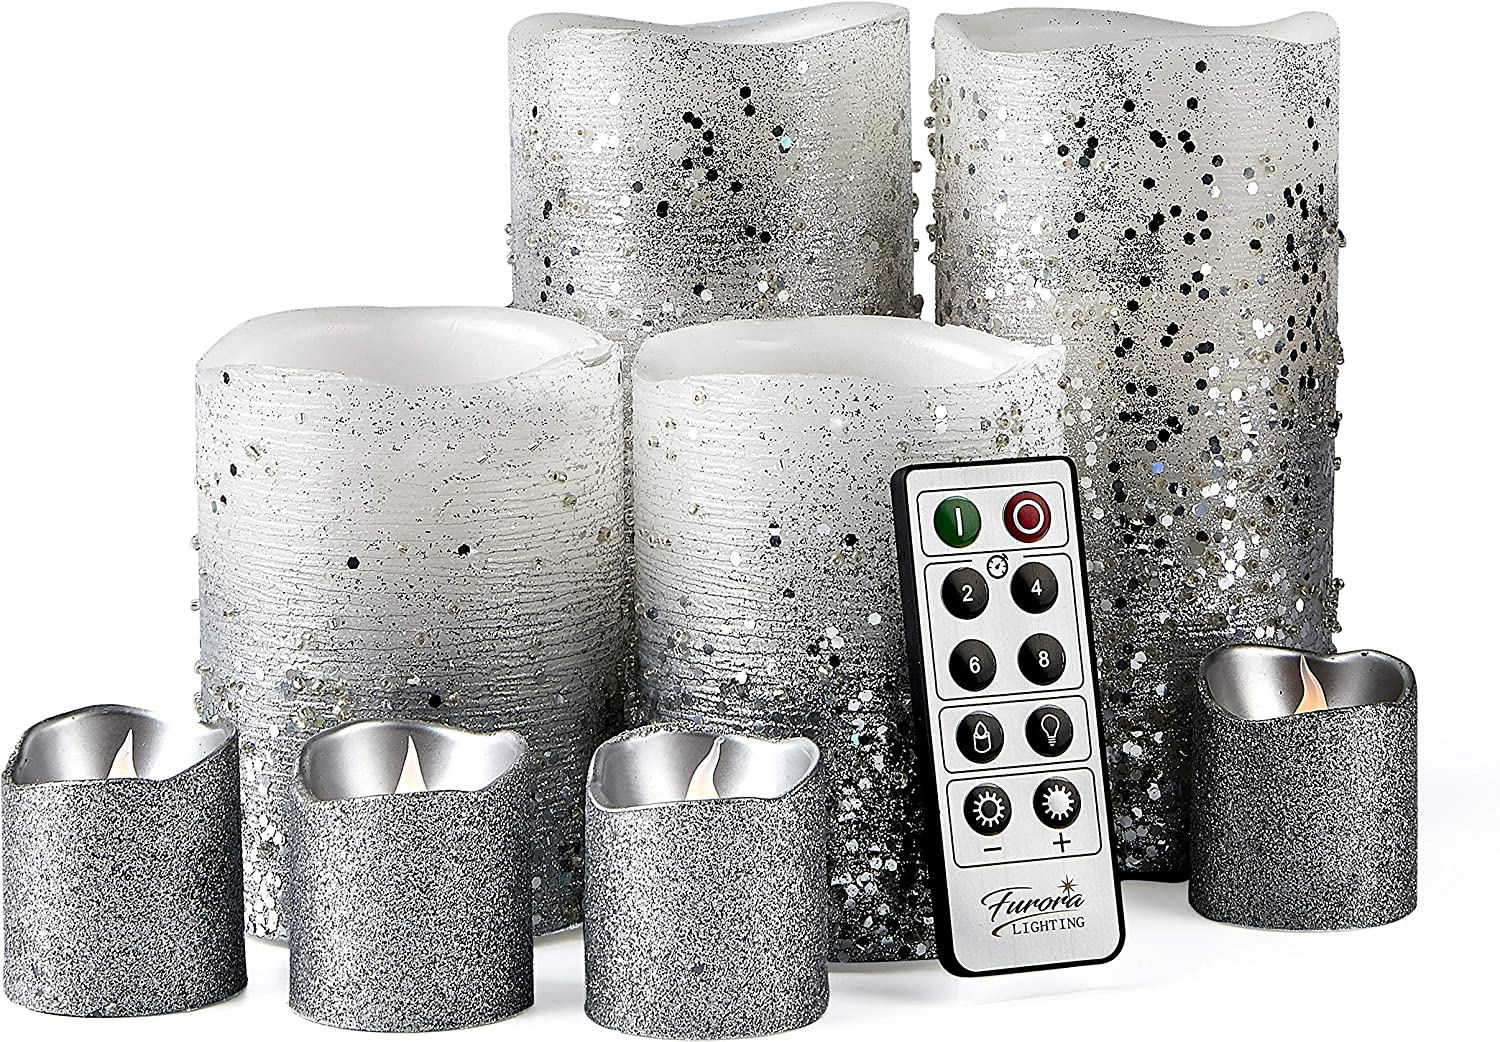 Furora LIGHTING LED Flameless Candles with Remote Control, Set of 8, Real Wax Battery Operated Pillars and Votives LED Candles with Flickering Flame and Timer Featured - Silver Glittery